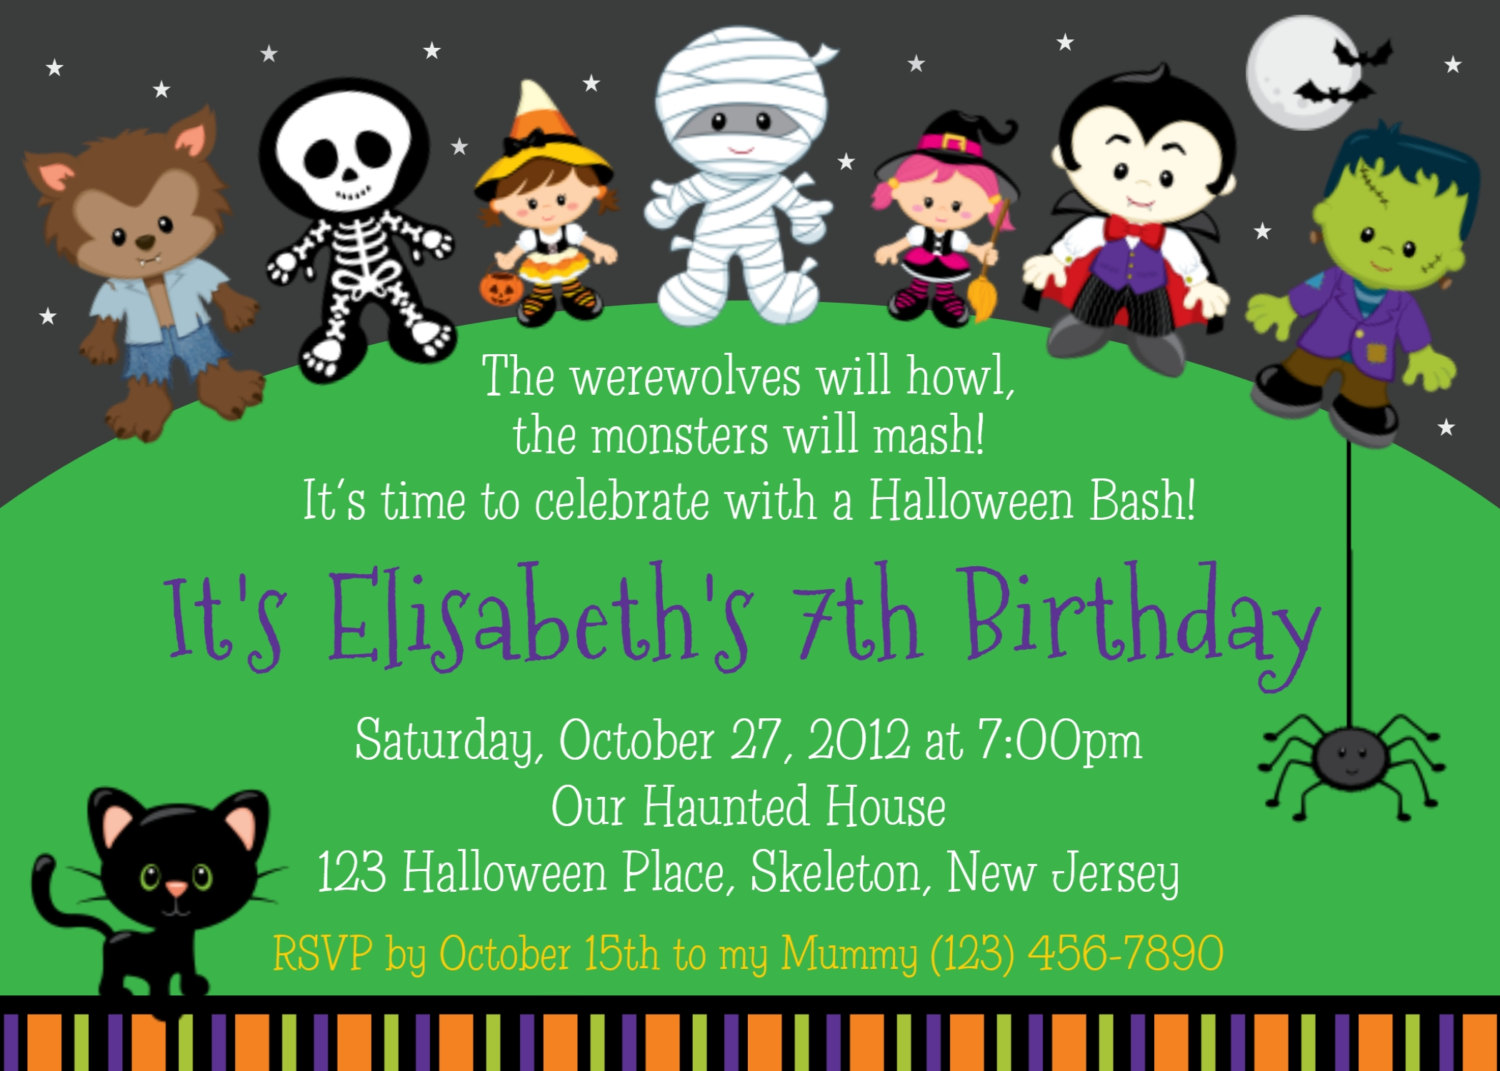 halloween birthday invitations with photo ; Halloween-birthday-party-invitations-and-get-inspired-to-create-your-own-party-invitation-design-with-this-ideas-1